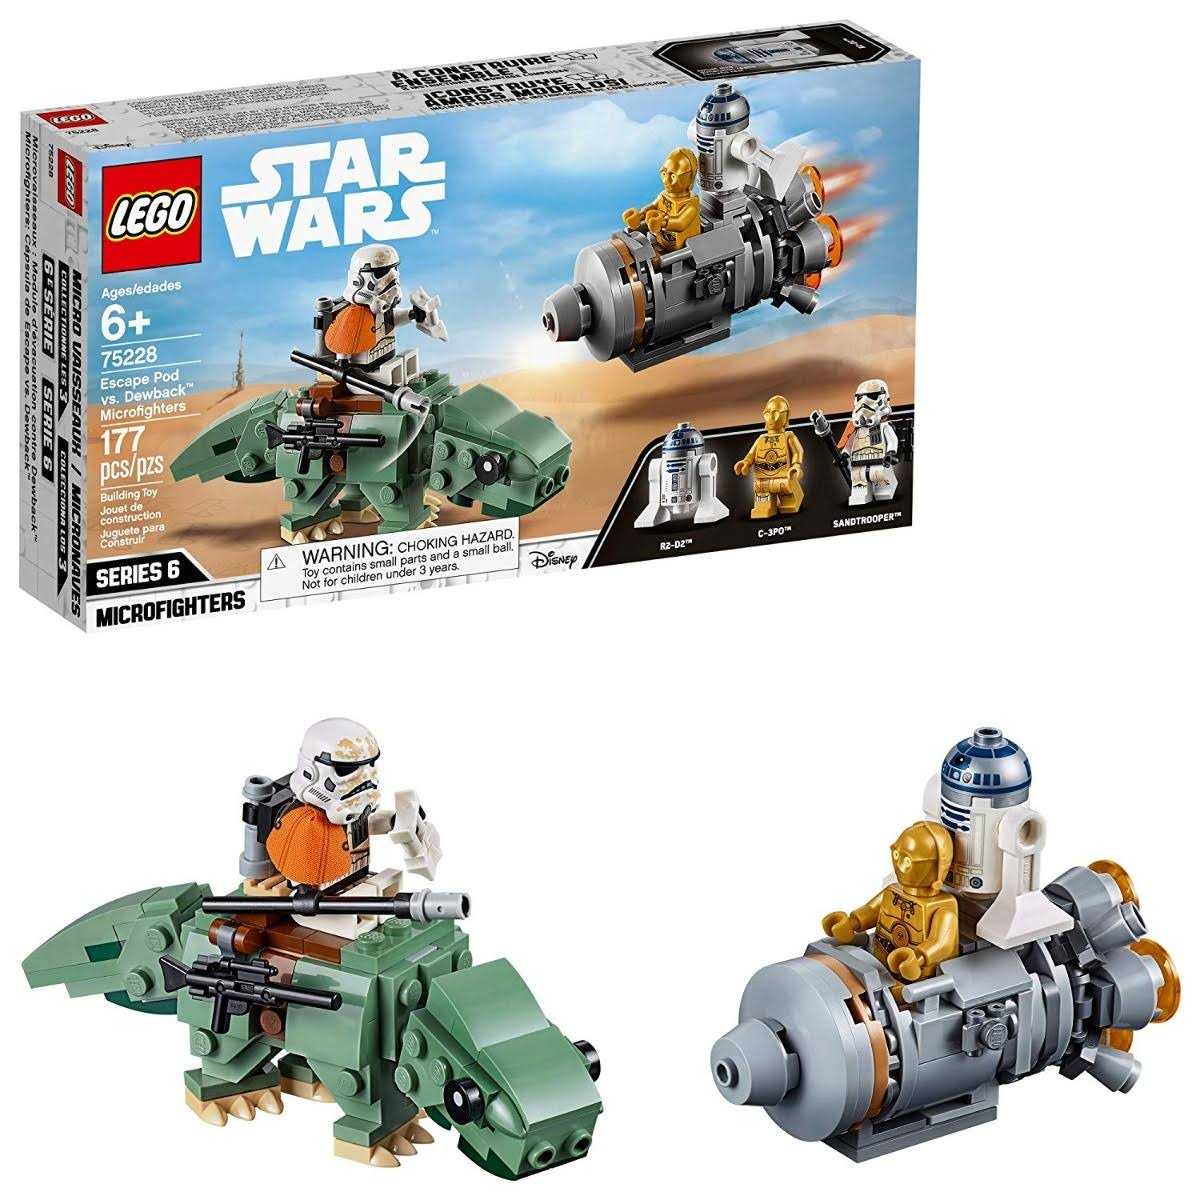 Lego Star Wars Escape Pod vs Dewback Microfighters Playset